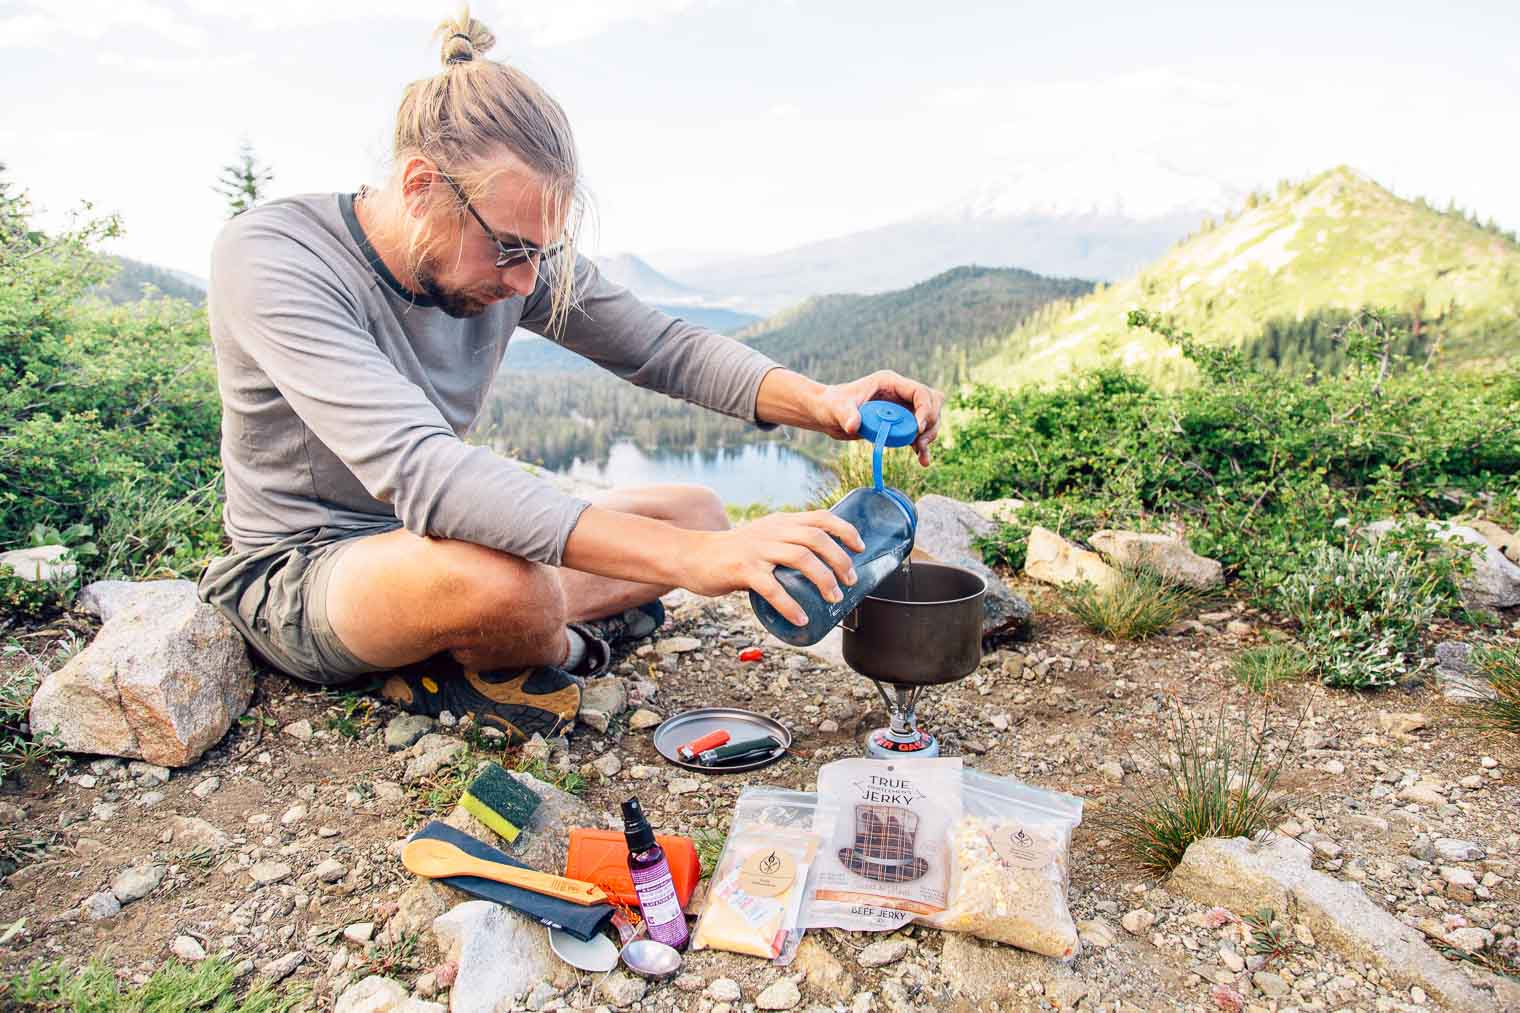 An easy backpacking meal idea: Fried Rice with Jerky. With just a few ingredients (and no dehydrator!) you can make this backpacking dinner ahead of time and enjoy a homemade meal on the trail.